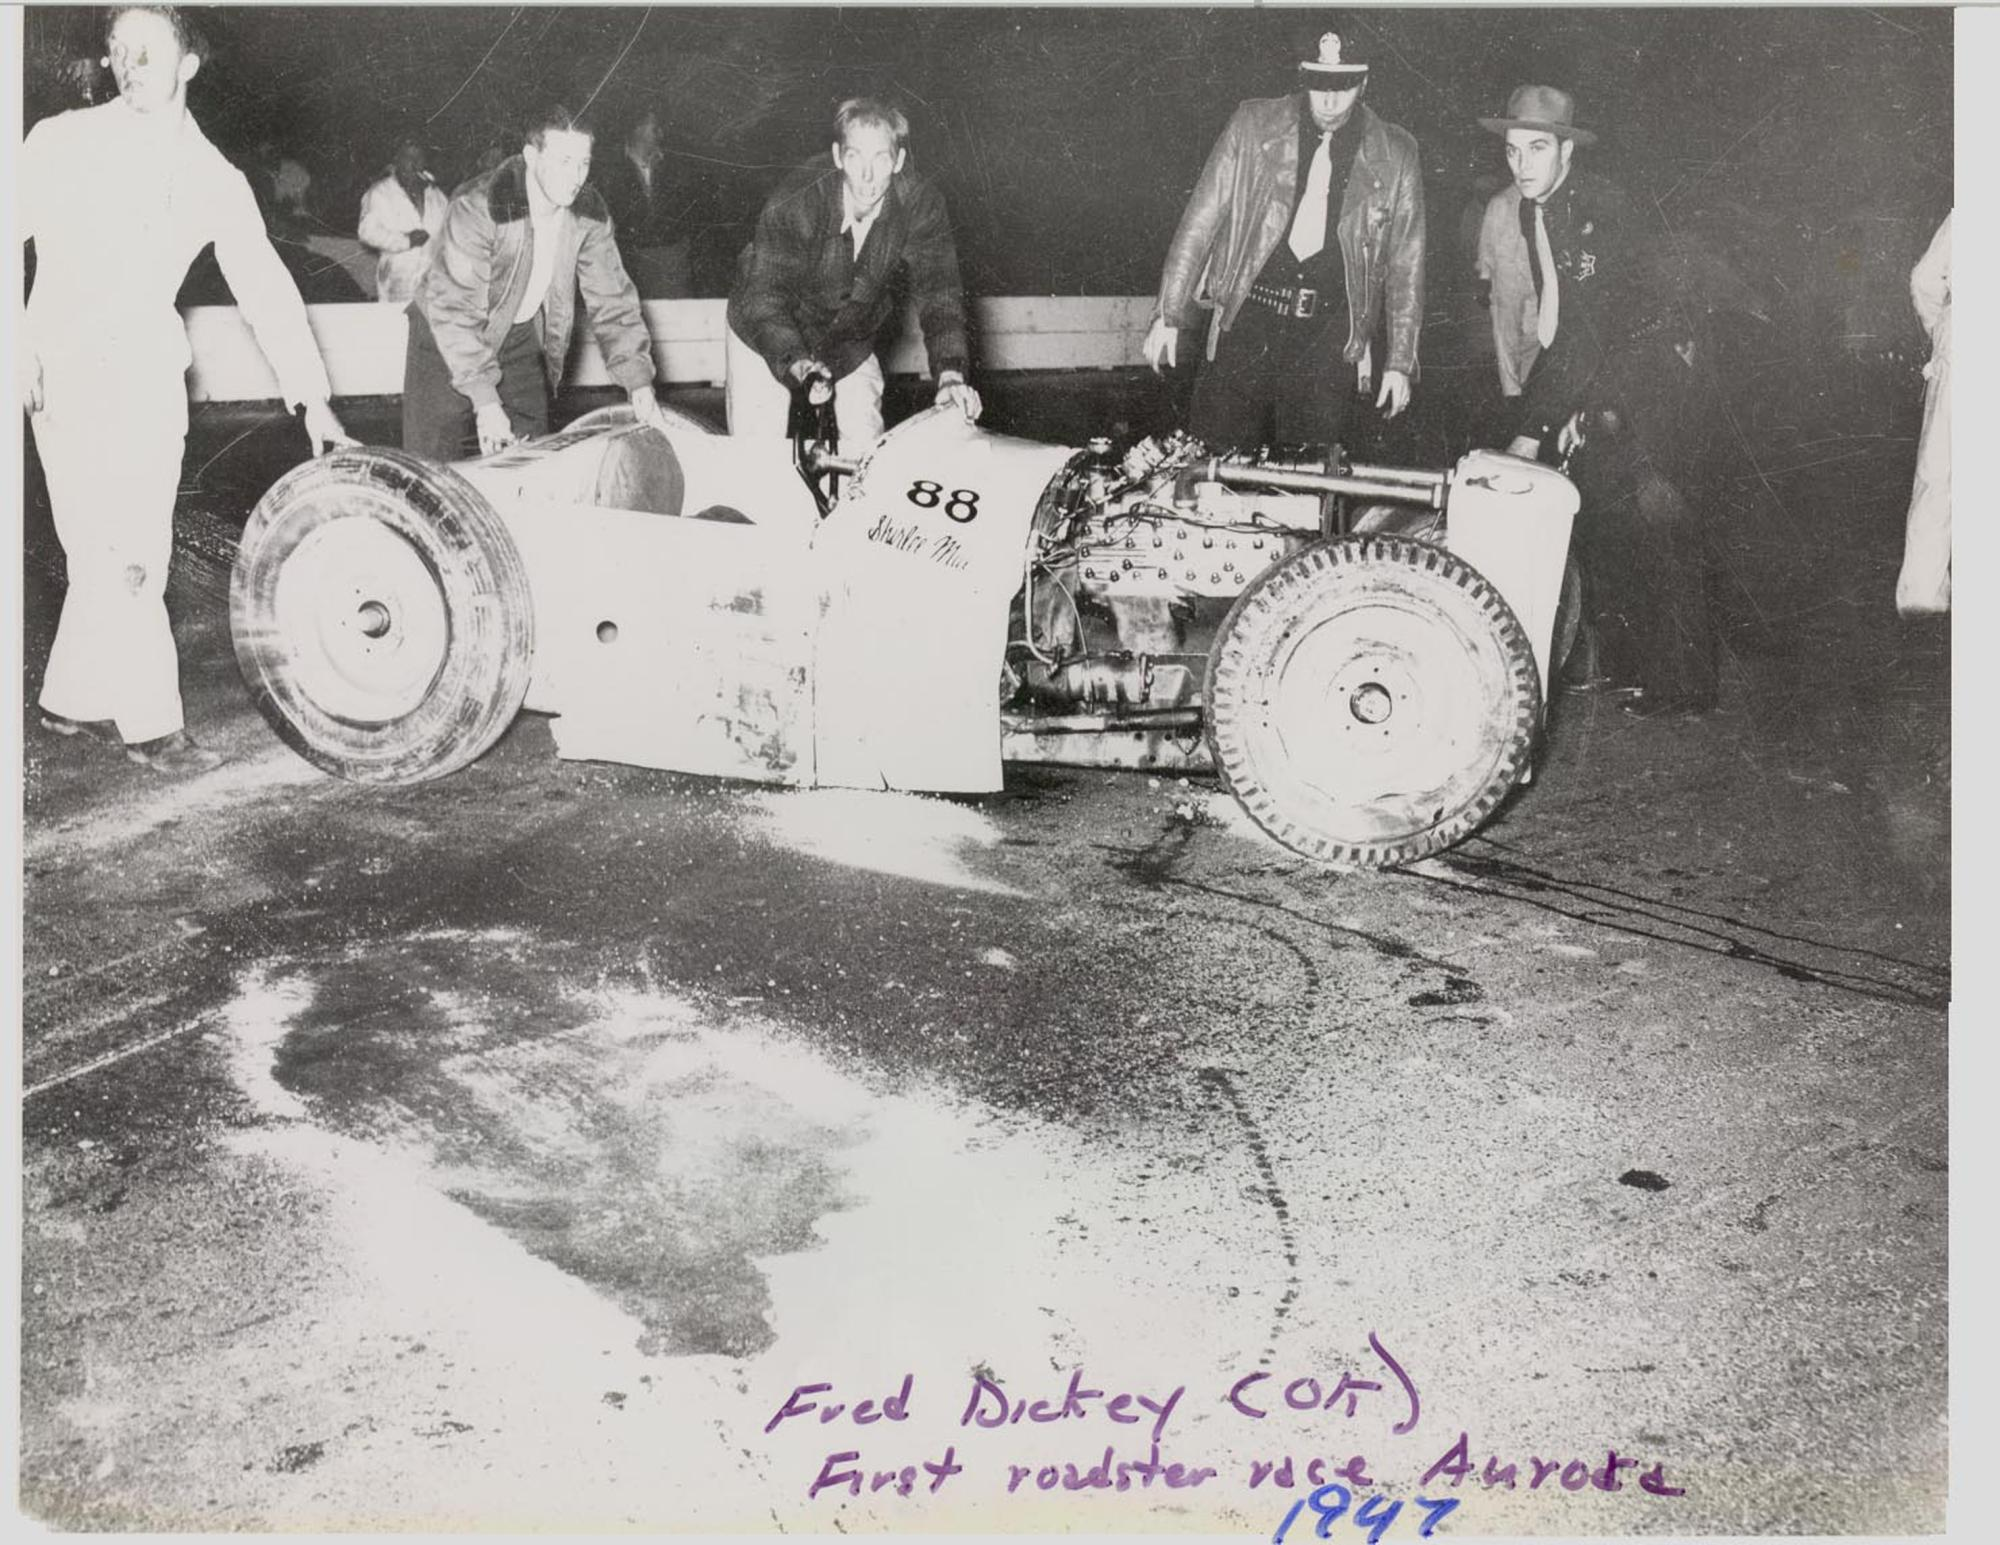 TR0008__88_Fred_Dikckey_wreck__first_roadster_race_at_Aurora__Seattle__HR.jpg